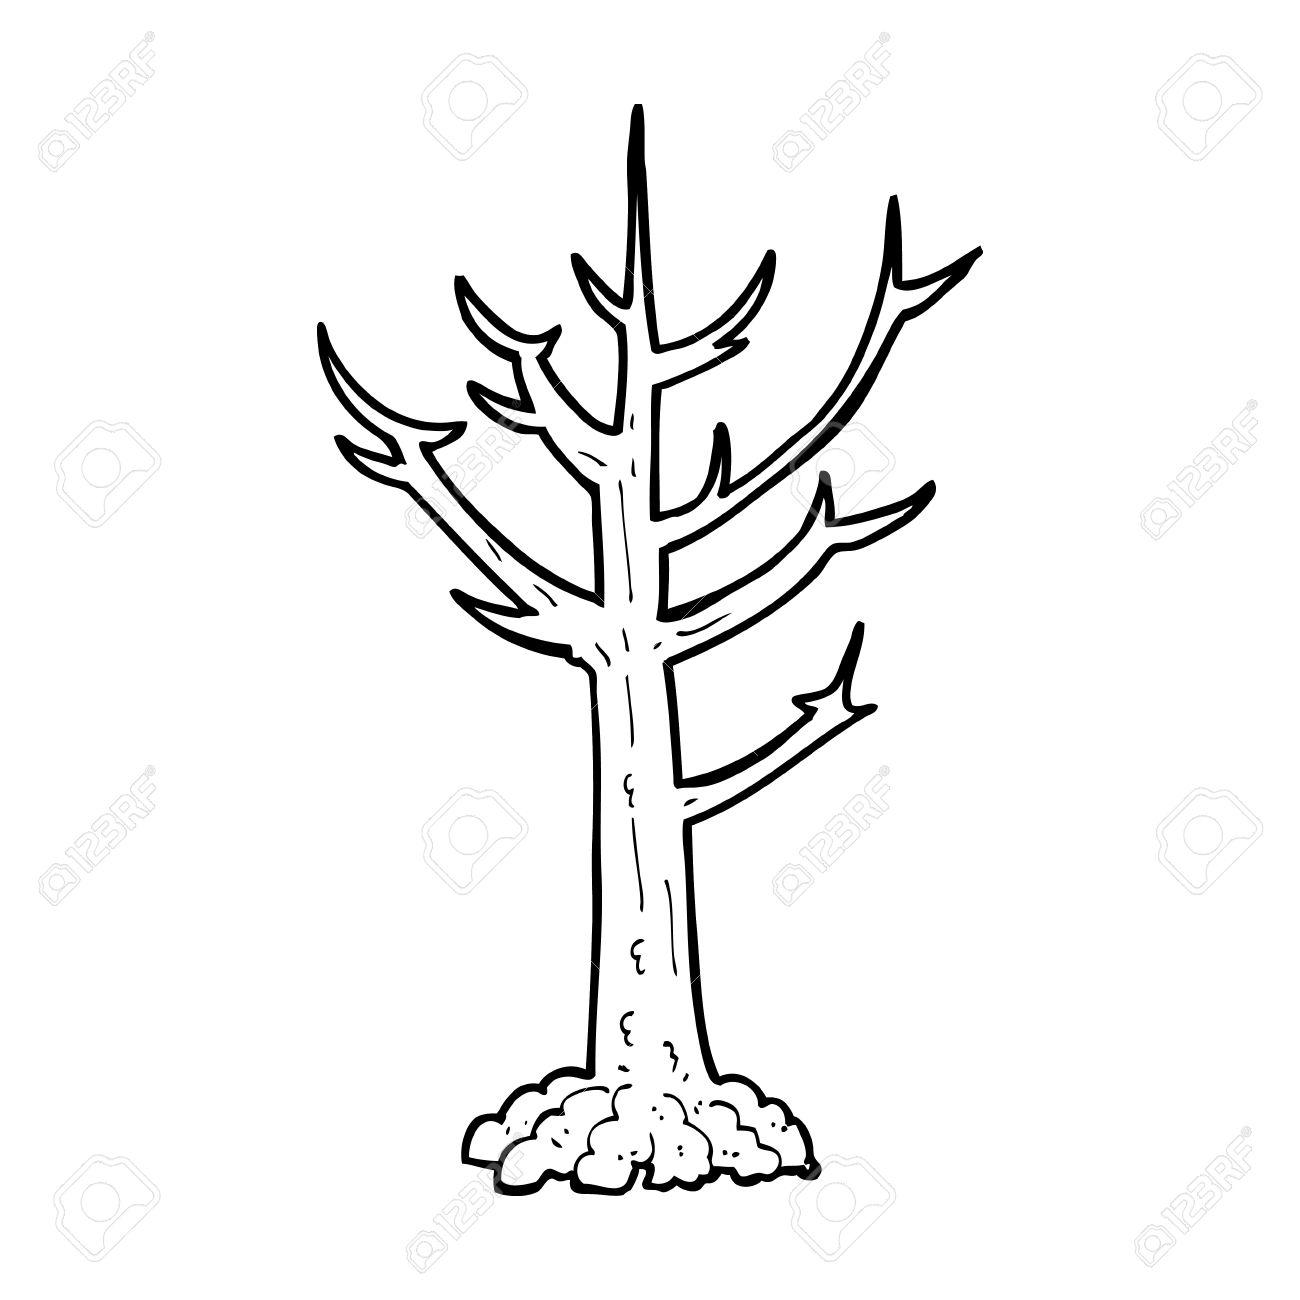 Naked Tree clipart #1, Download drawings